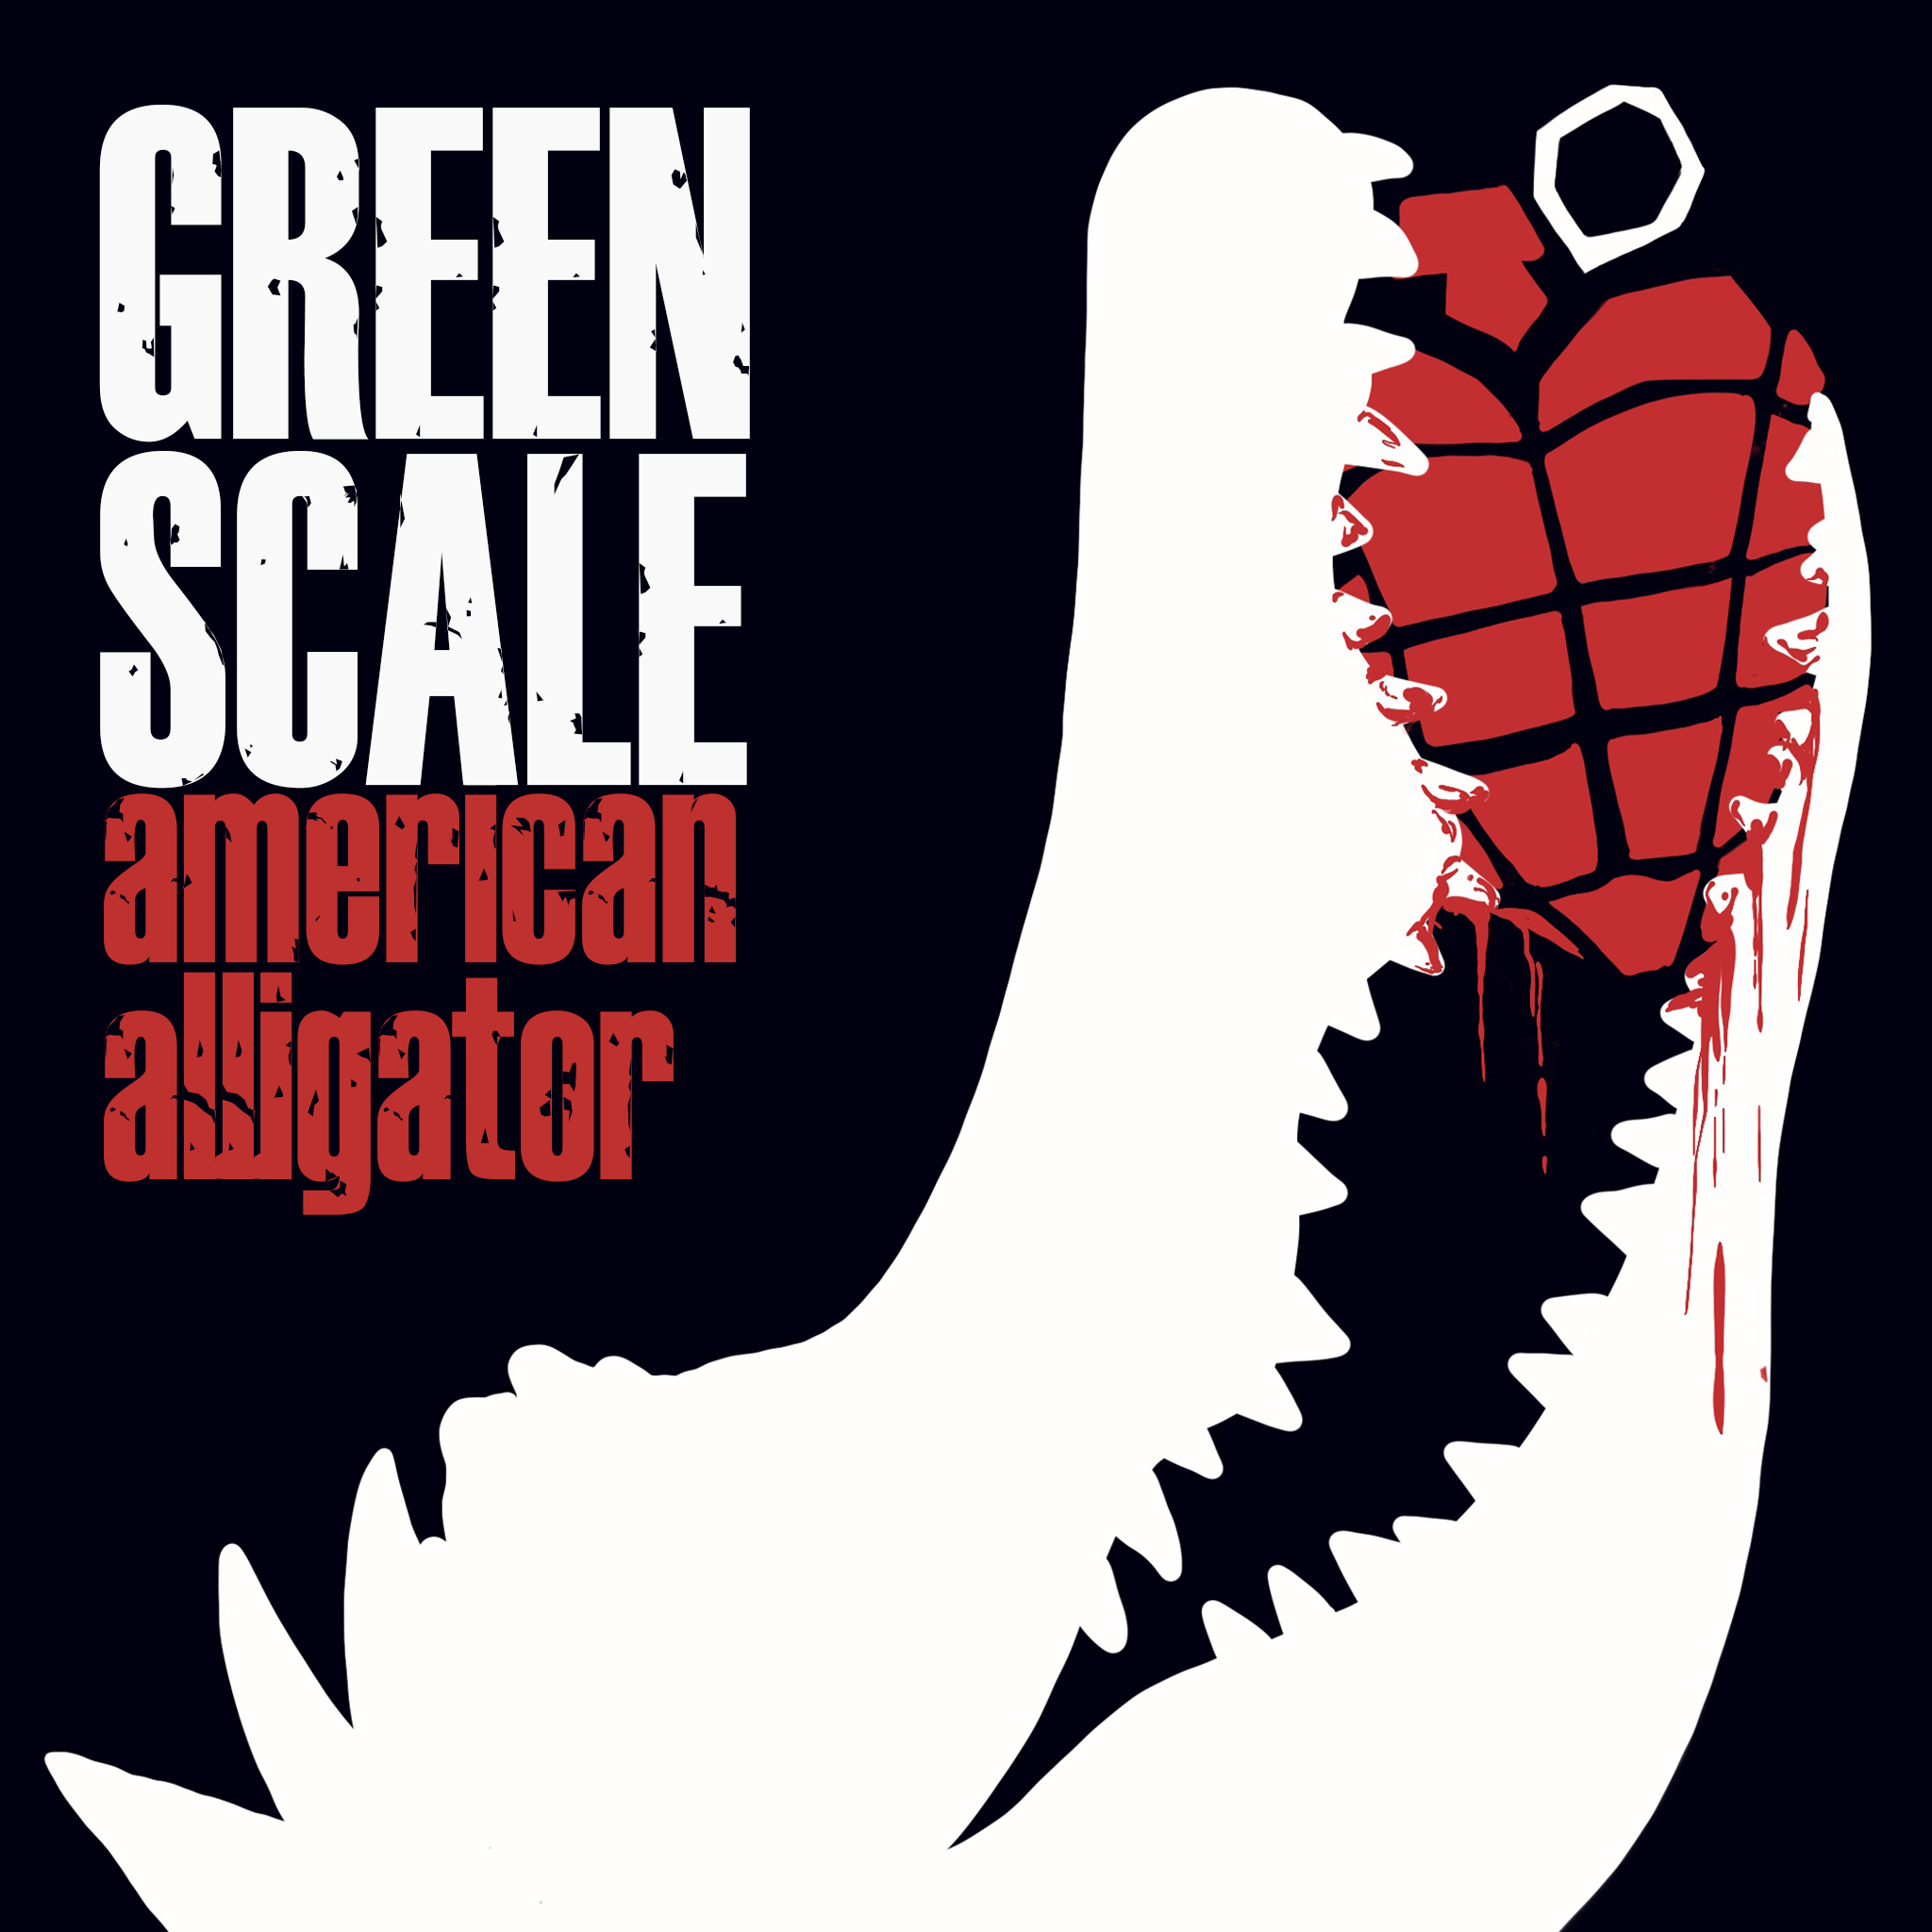 GREEN SCALE Riot Fest 2019 alligator.png